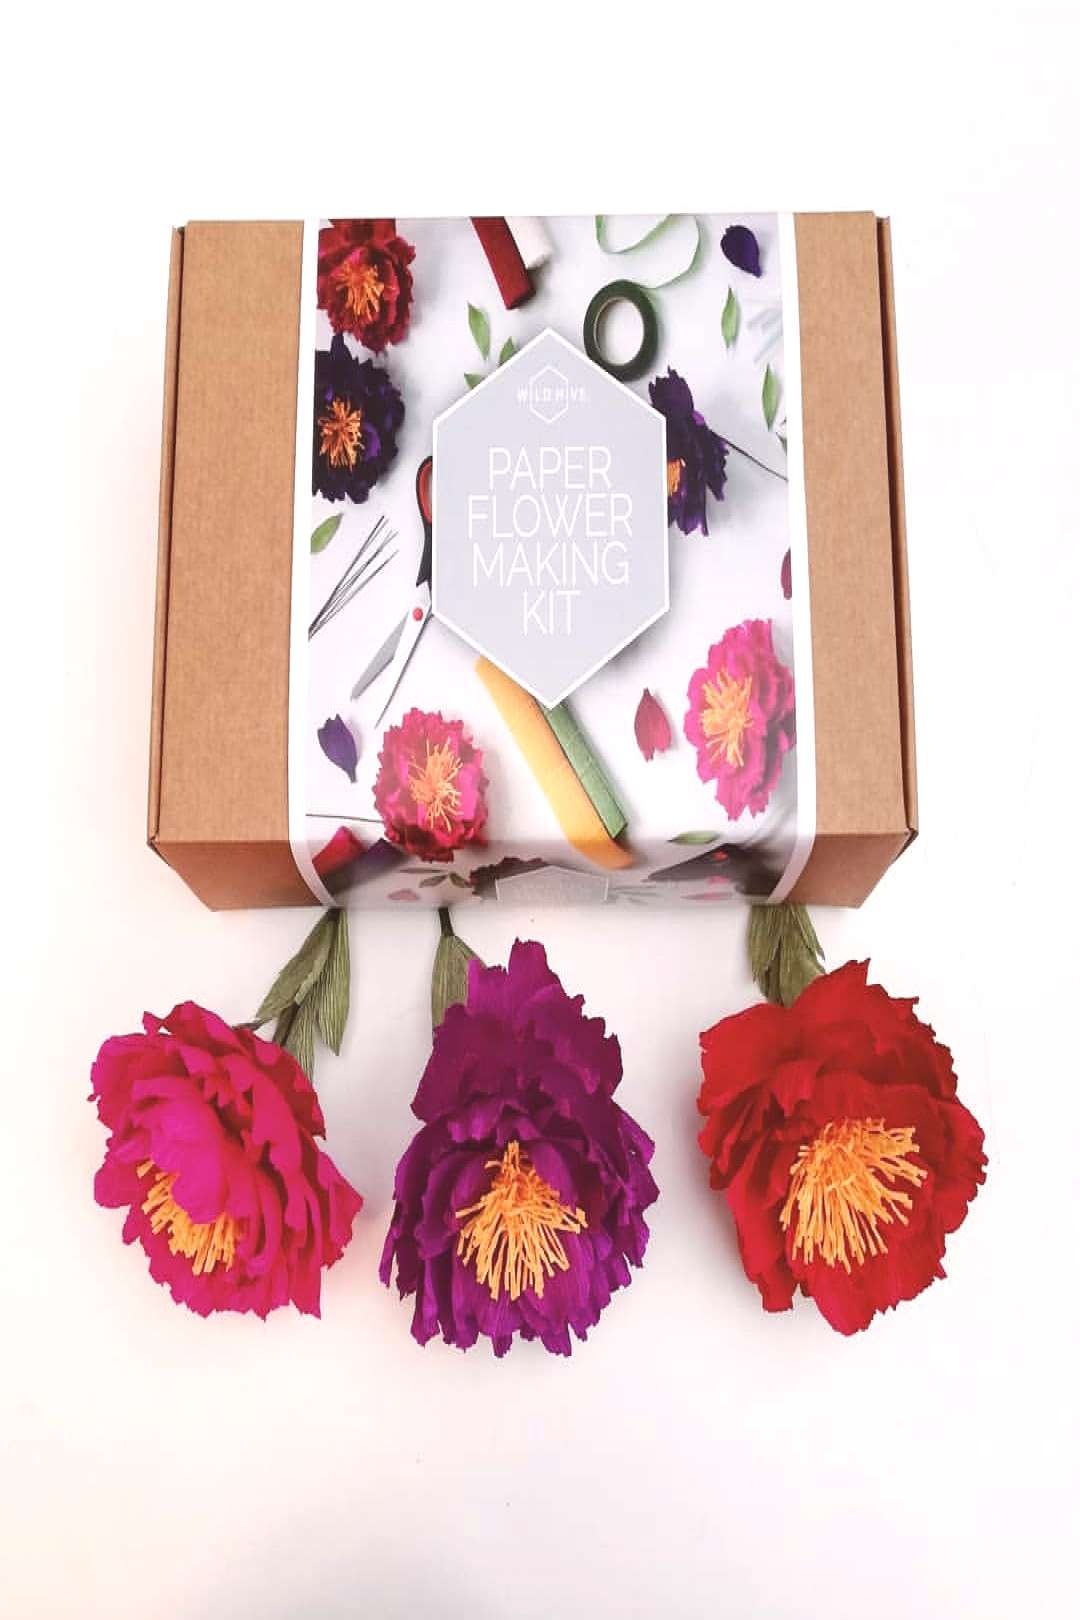 A follower released a paper flower making kit this week that look